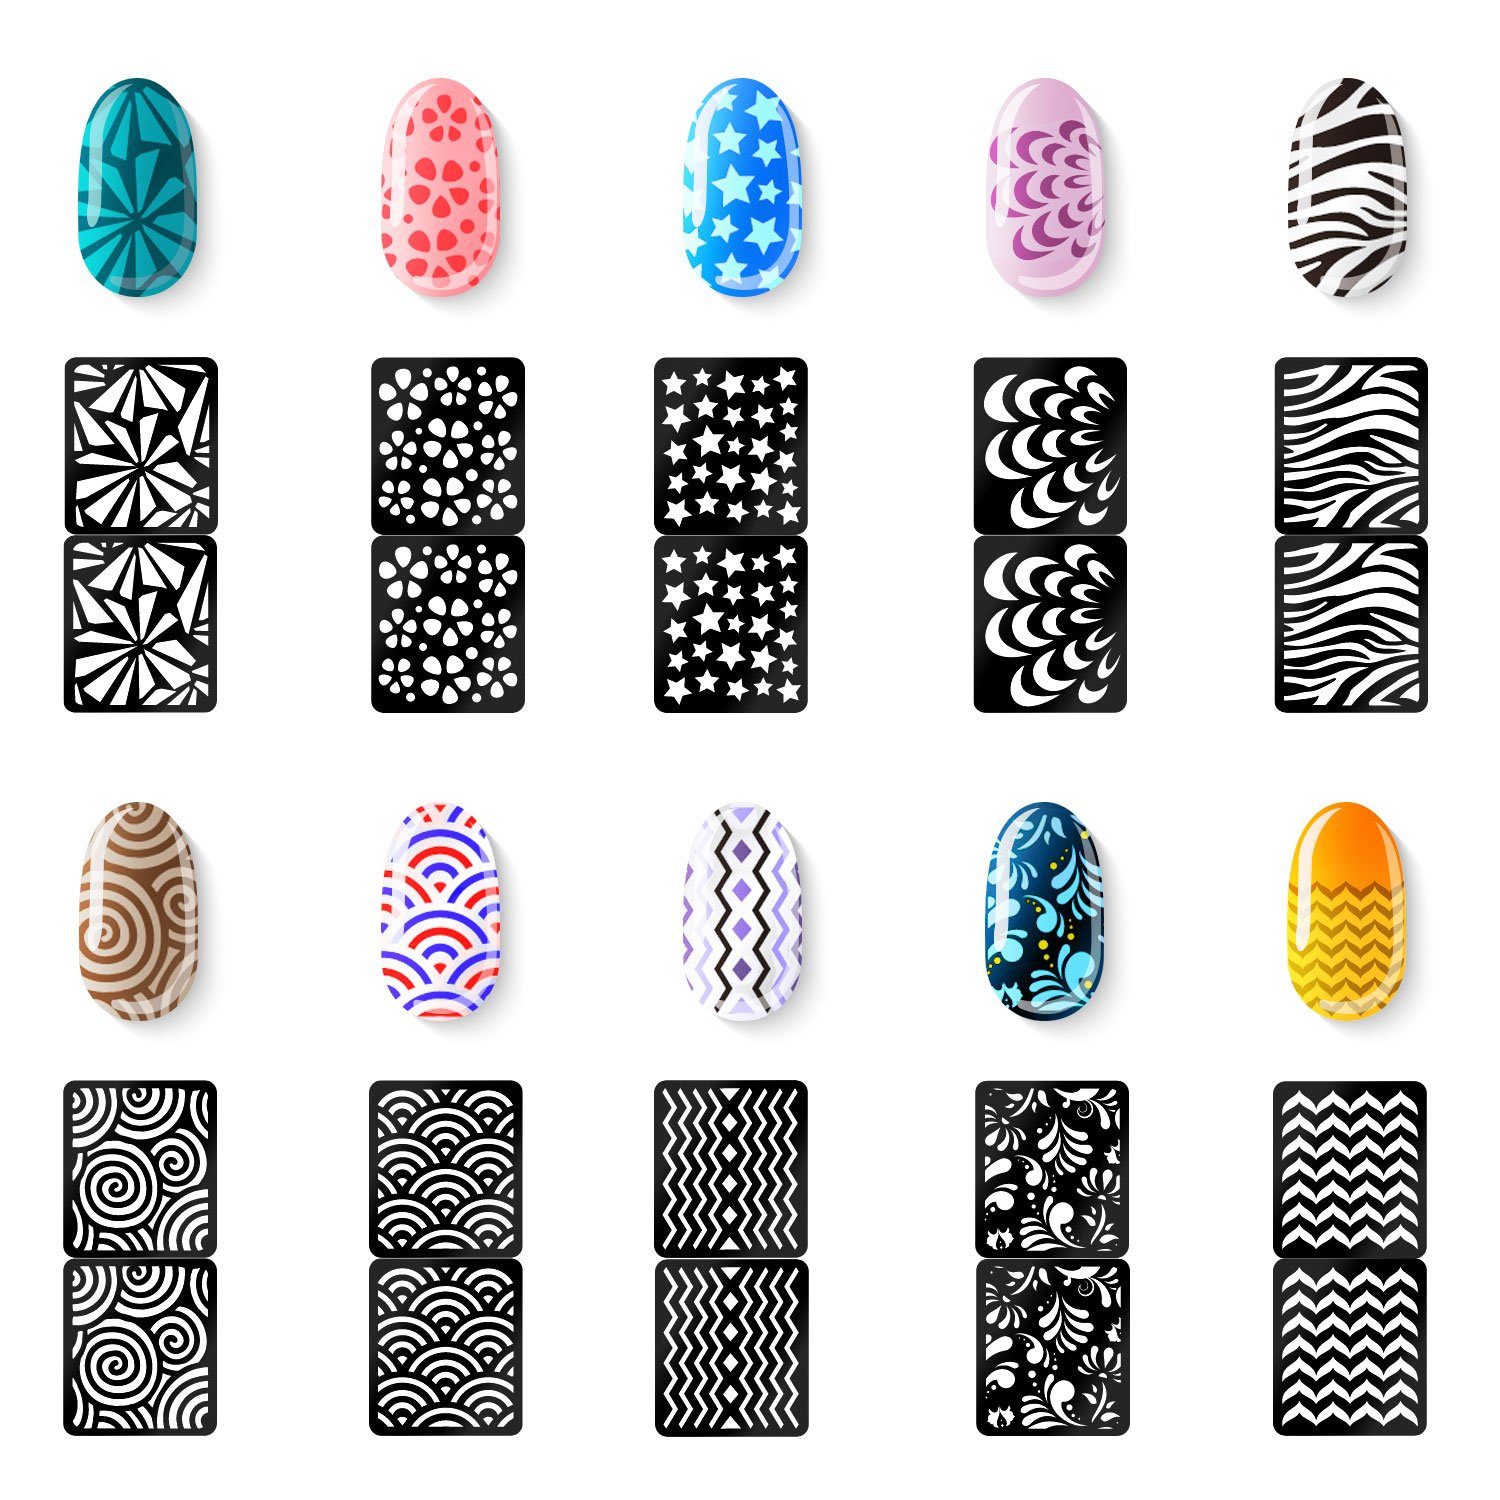 Amazon Mudder 72 Designs 144 Pieces Nail Vinyls Stencils Nails Stickers Set 24 Sheets Cute Easy Art Decal Beauty